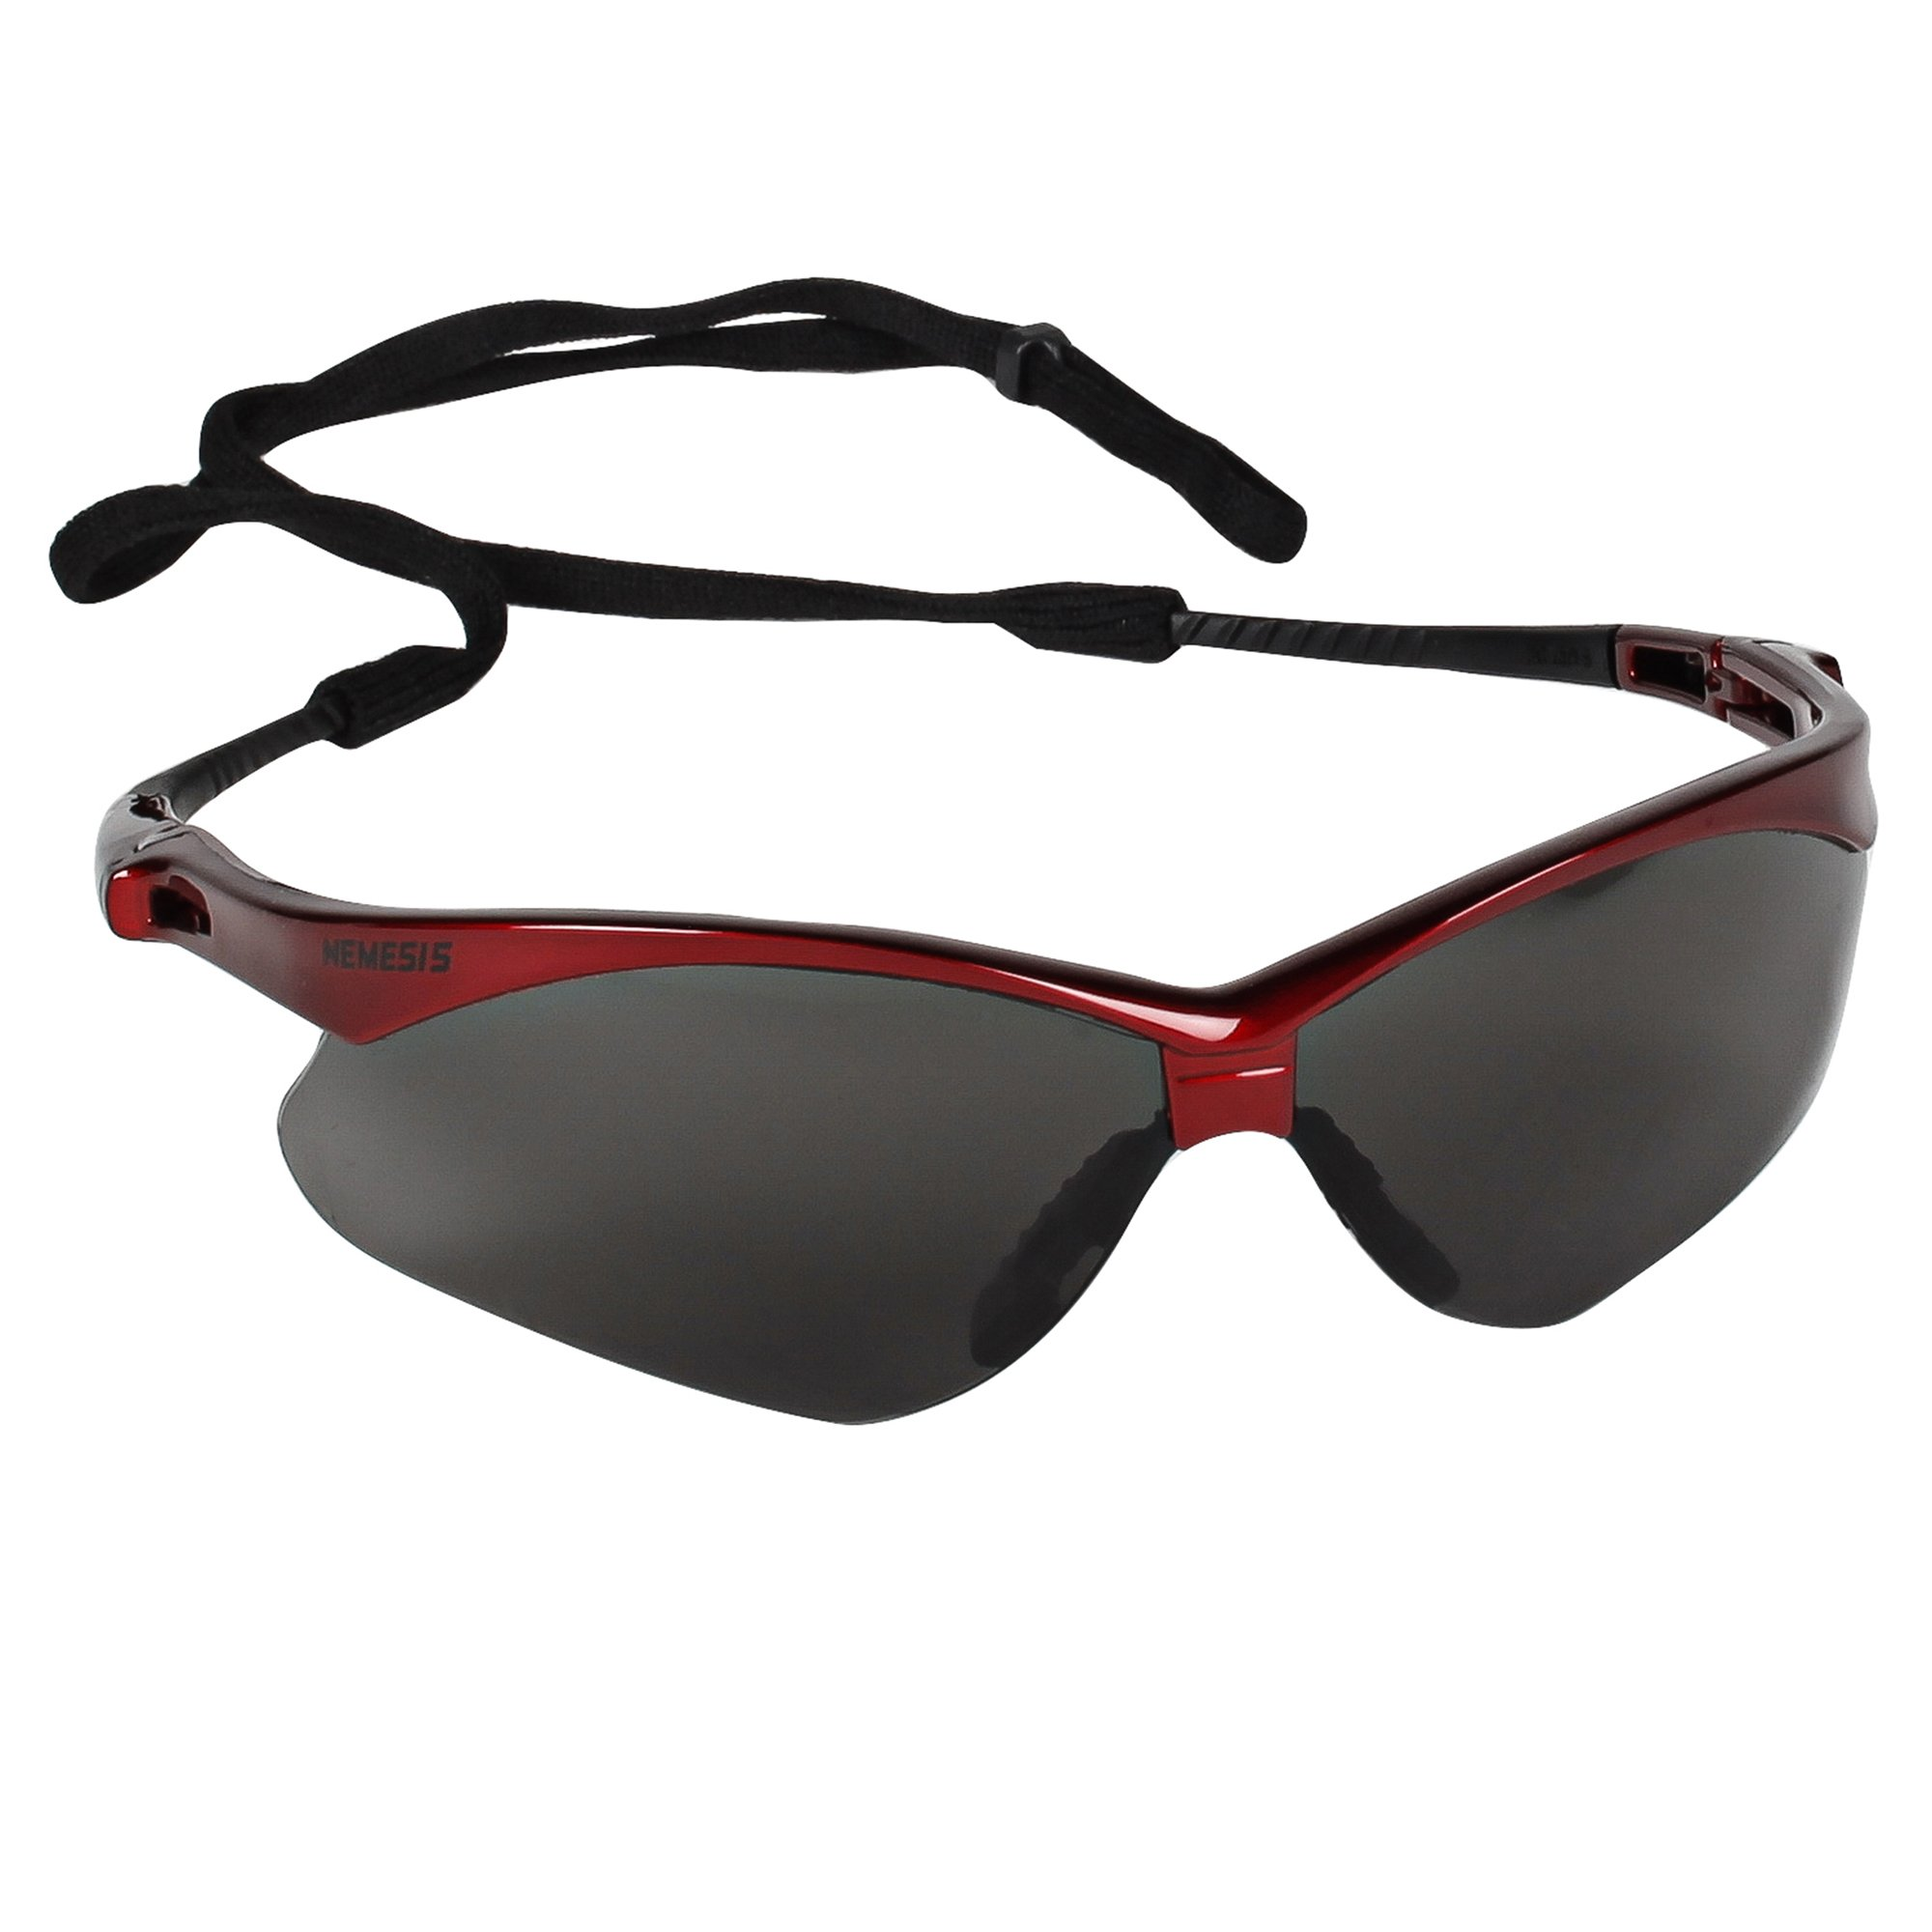 KLEENGUARD V30 Nemesis Safety Glasses (22611), Smoke Anti-Fog Lens, Red Frame, 12 Pairs / Case by KLEENGUARD